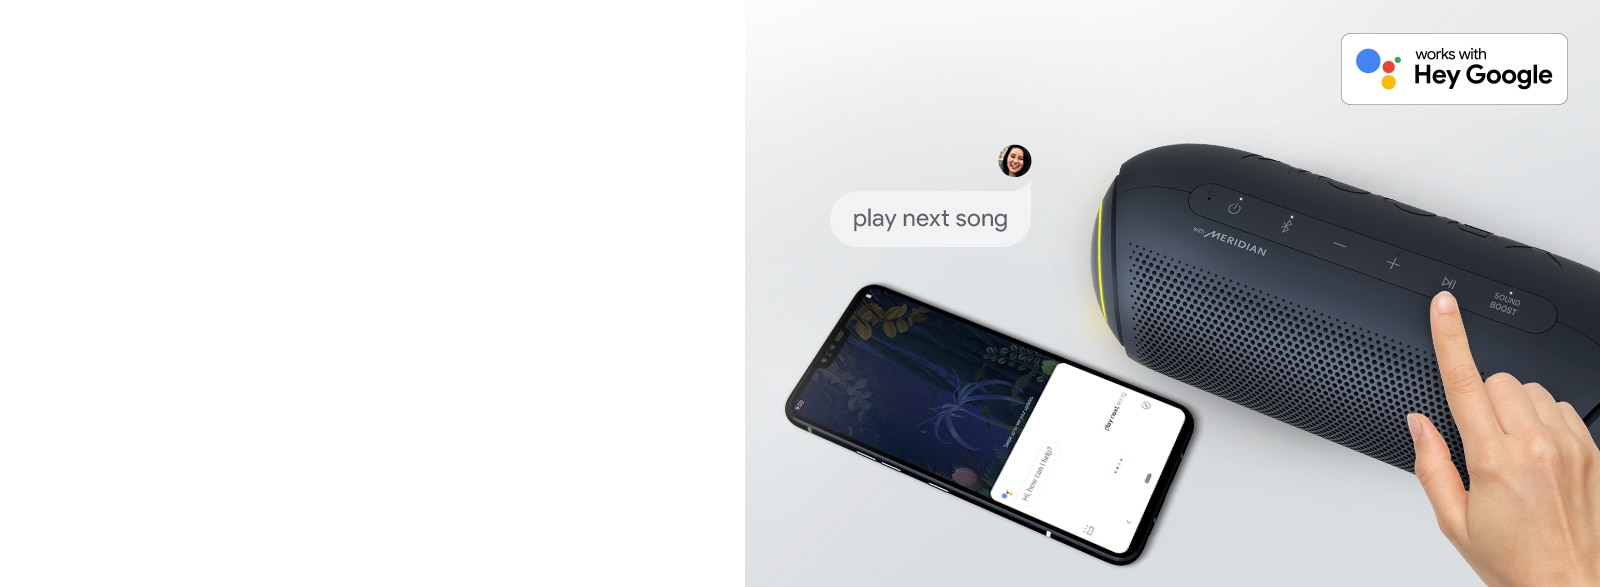 A hand presses a button on LG XBOOM Go. A smartphone is next it. There's a speech bubble. Google's logo is in the top right.